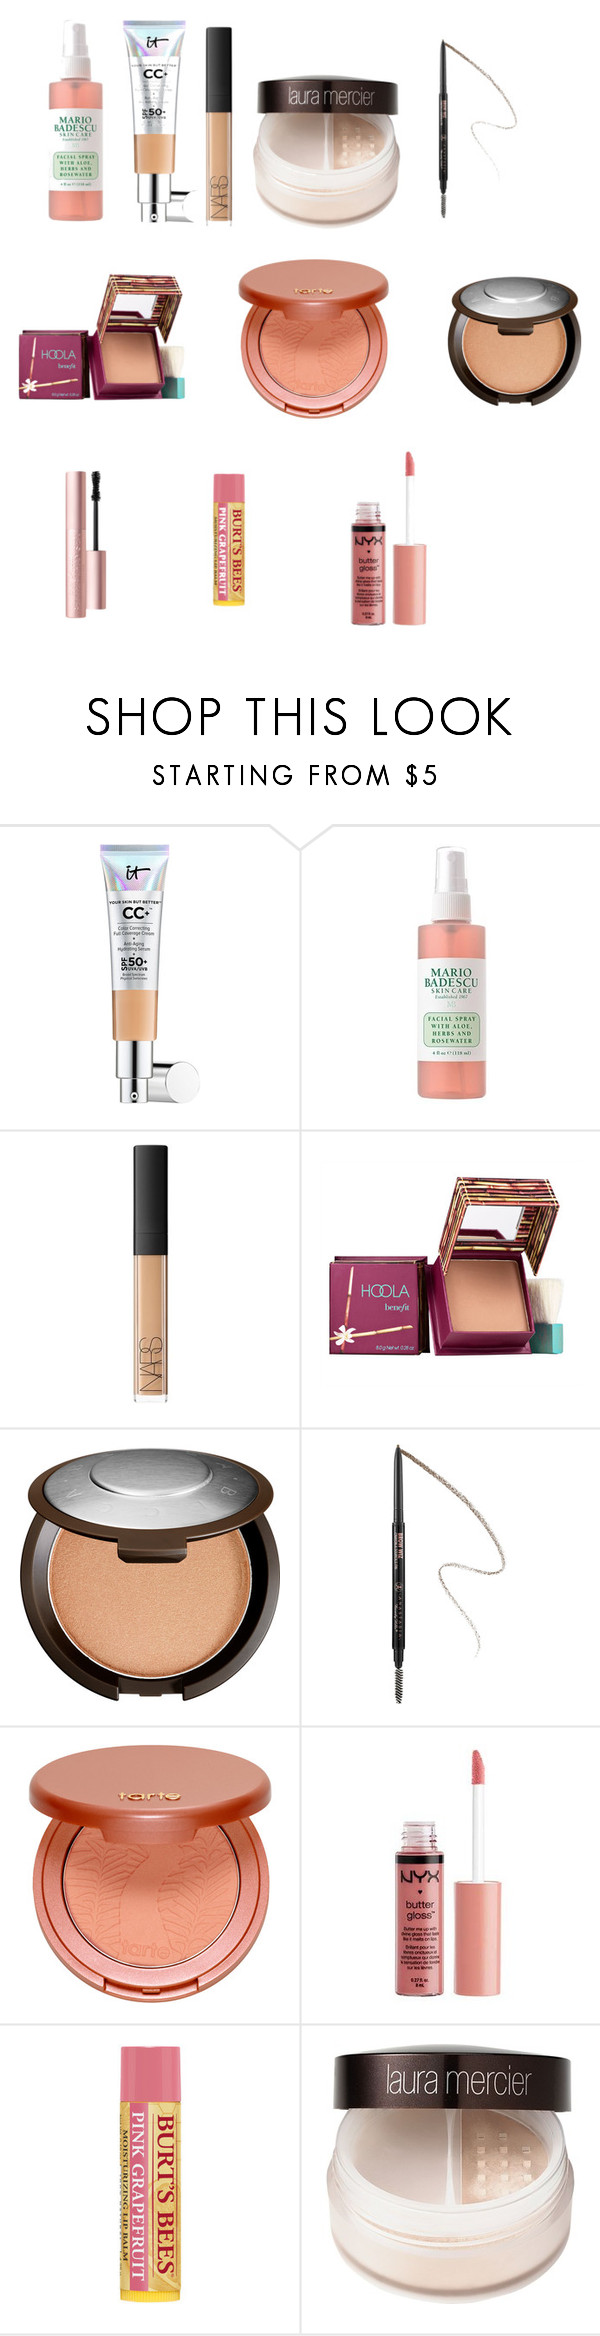 """Everyday Routine"" by ashleybrooke-iii ❤ liked on Polyvore featuring beauty, It Cosmetics, NARS Cosmetics, Hoola, Becca, Anastasia, tarte, Charlotte Russe, Burt's Bees and Laura Mercier"